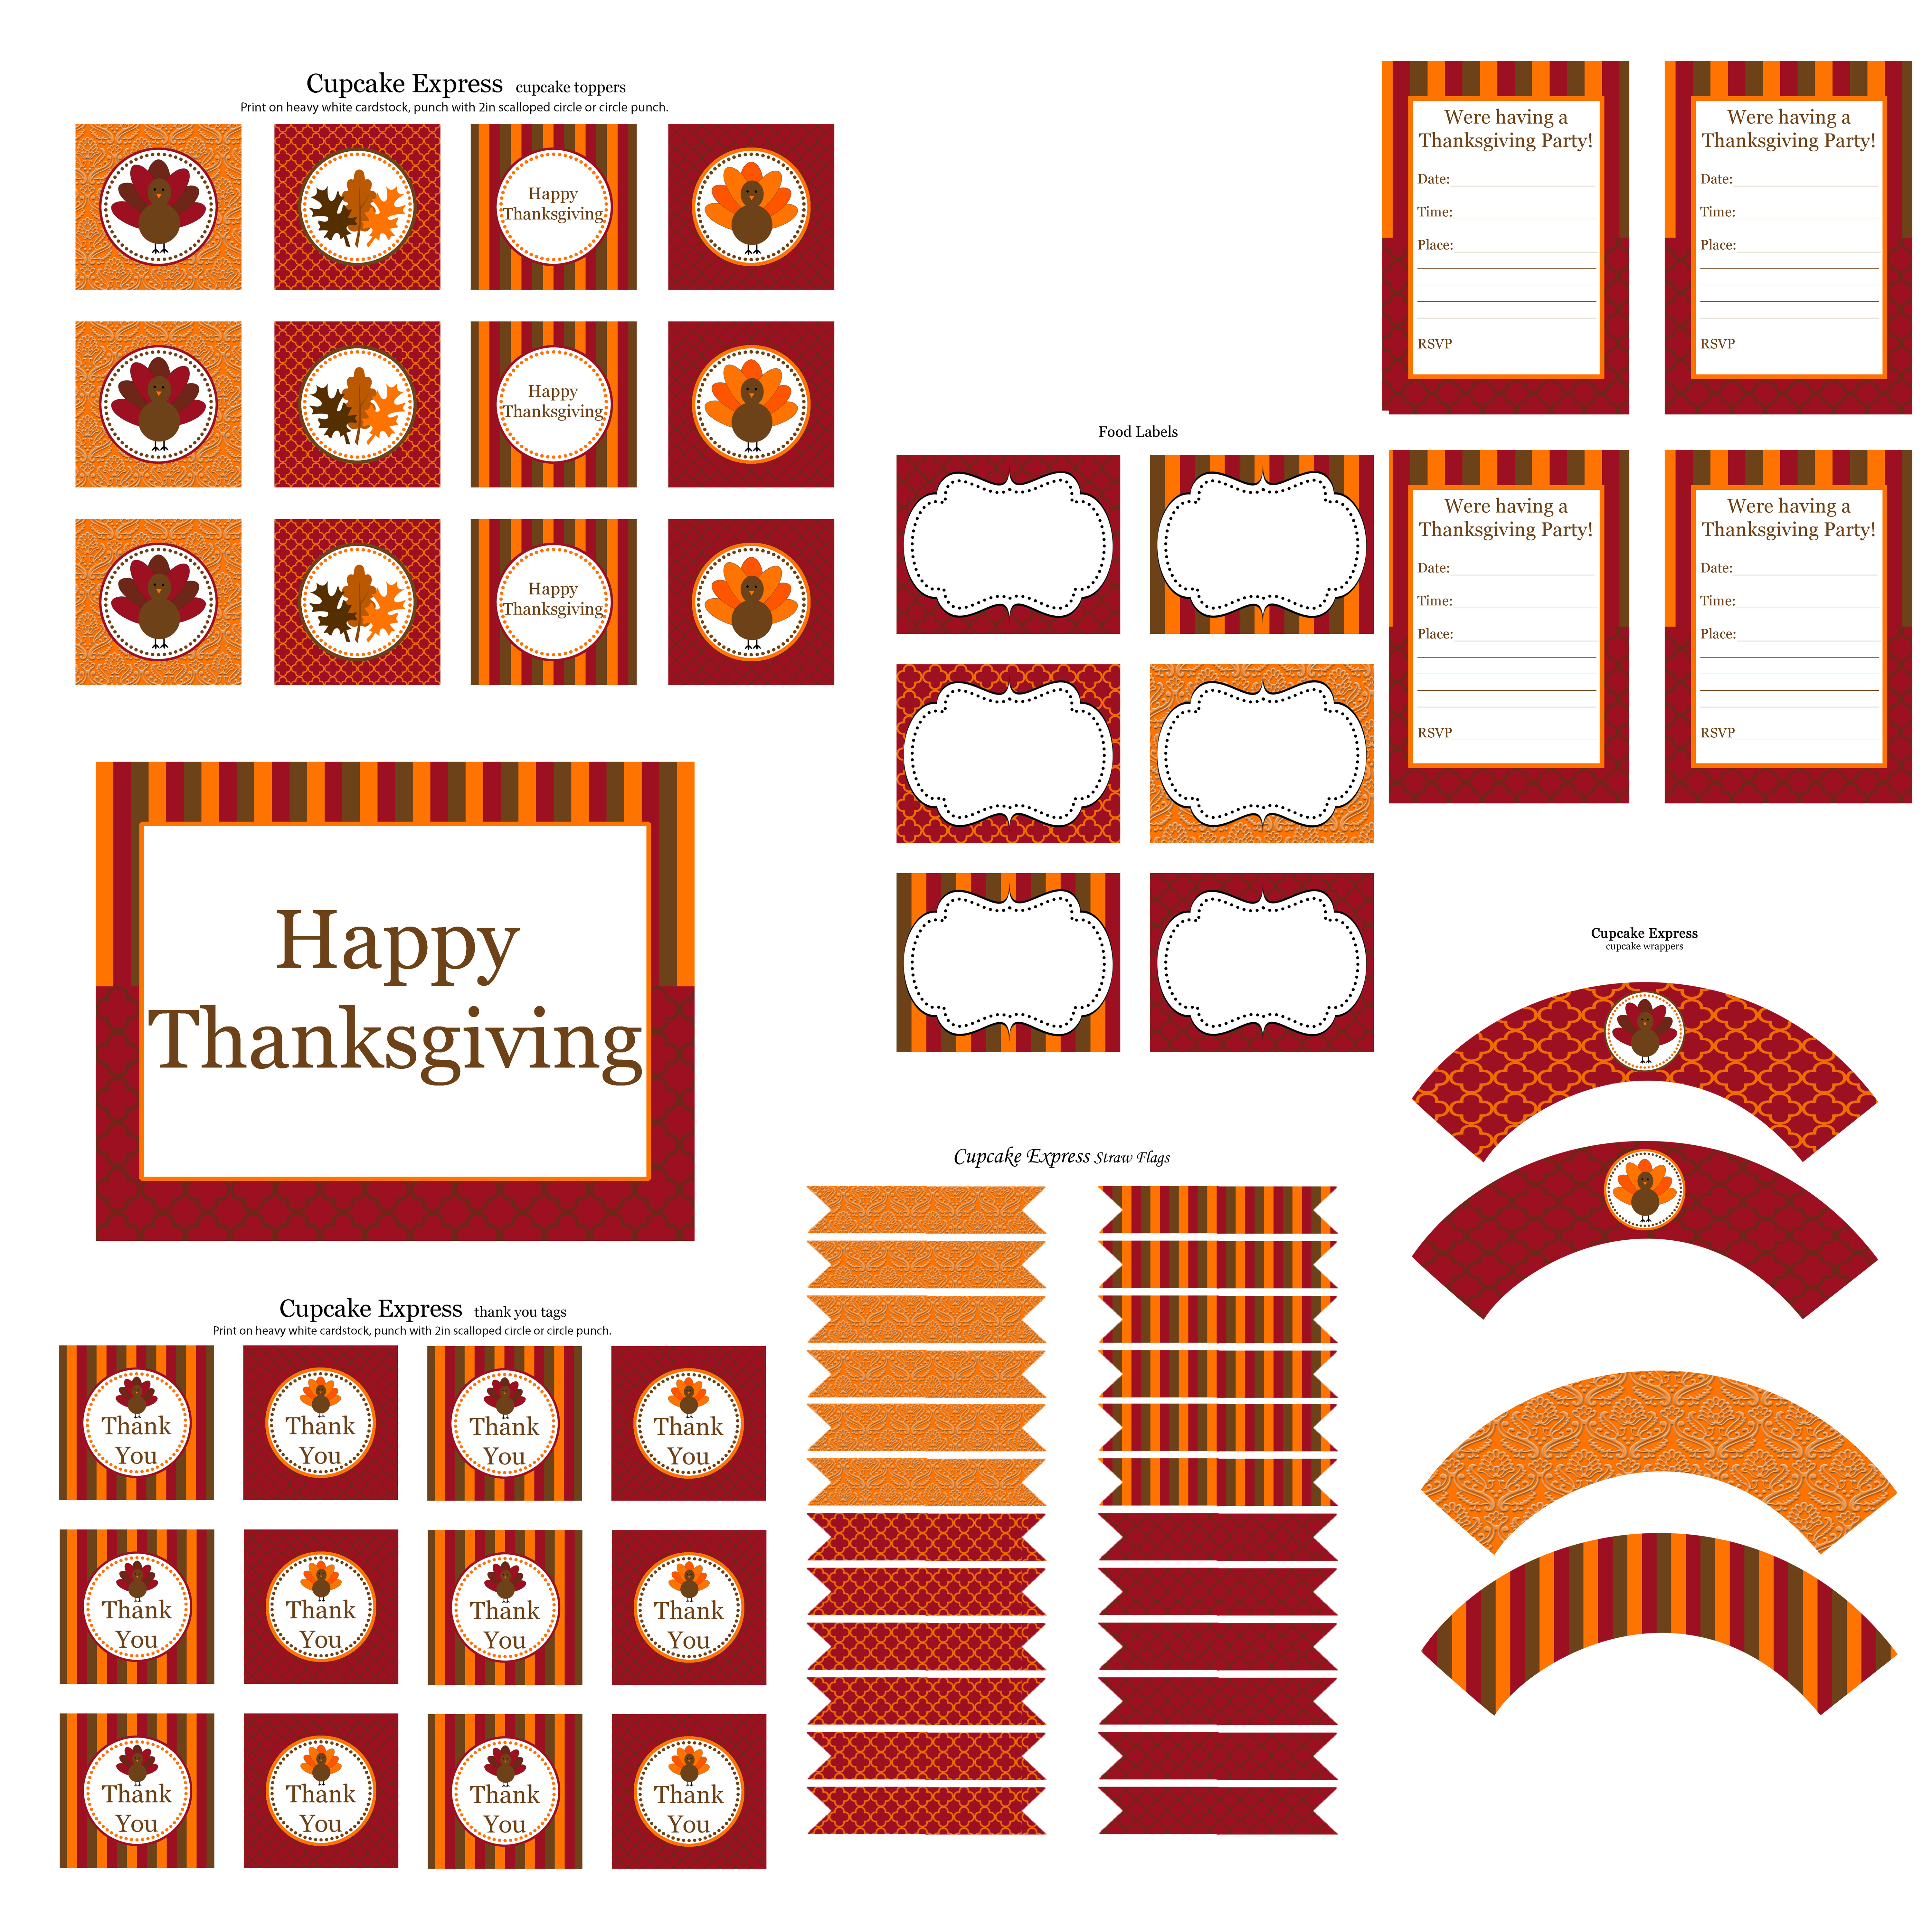 Free Thanksgiving Party Printables From Cupcake Express